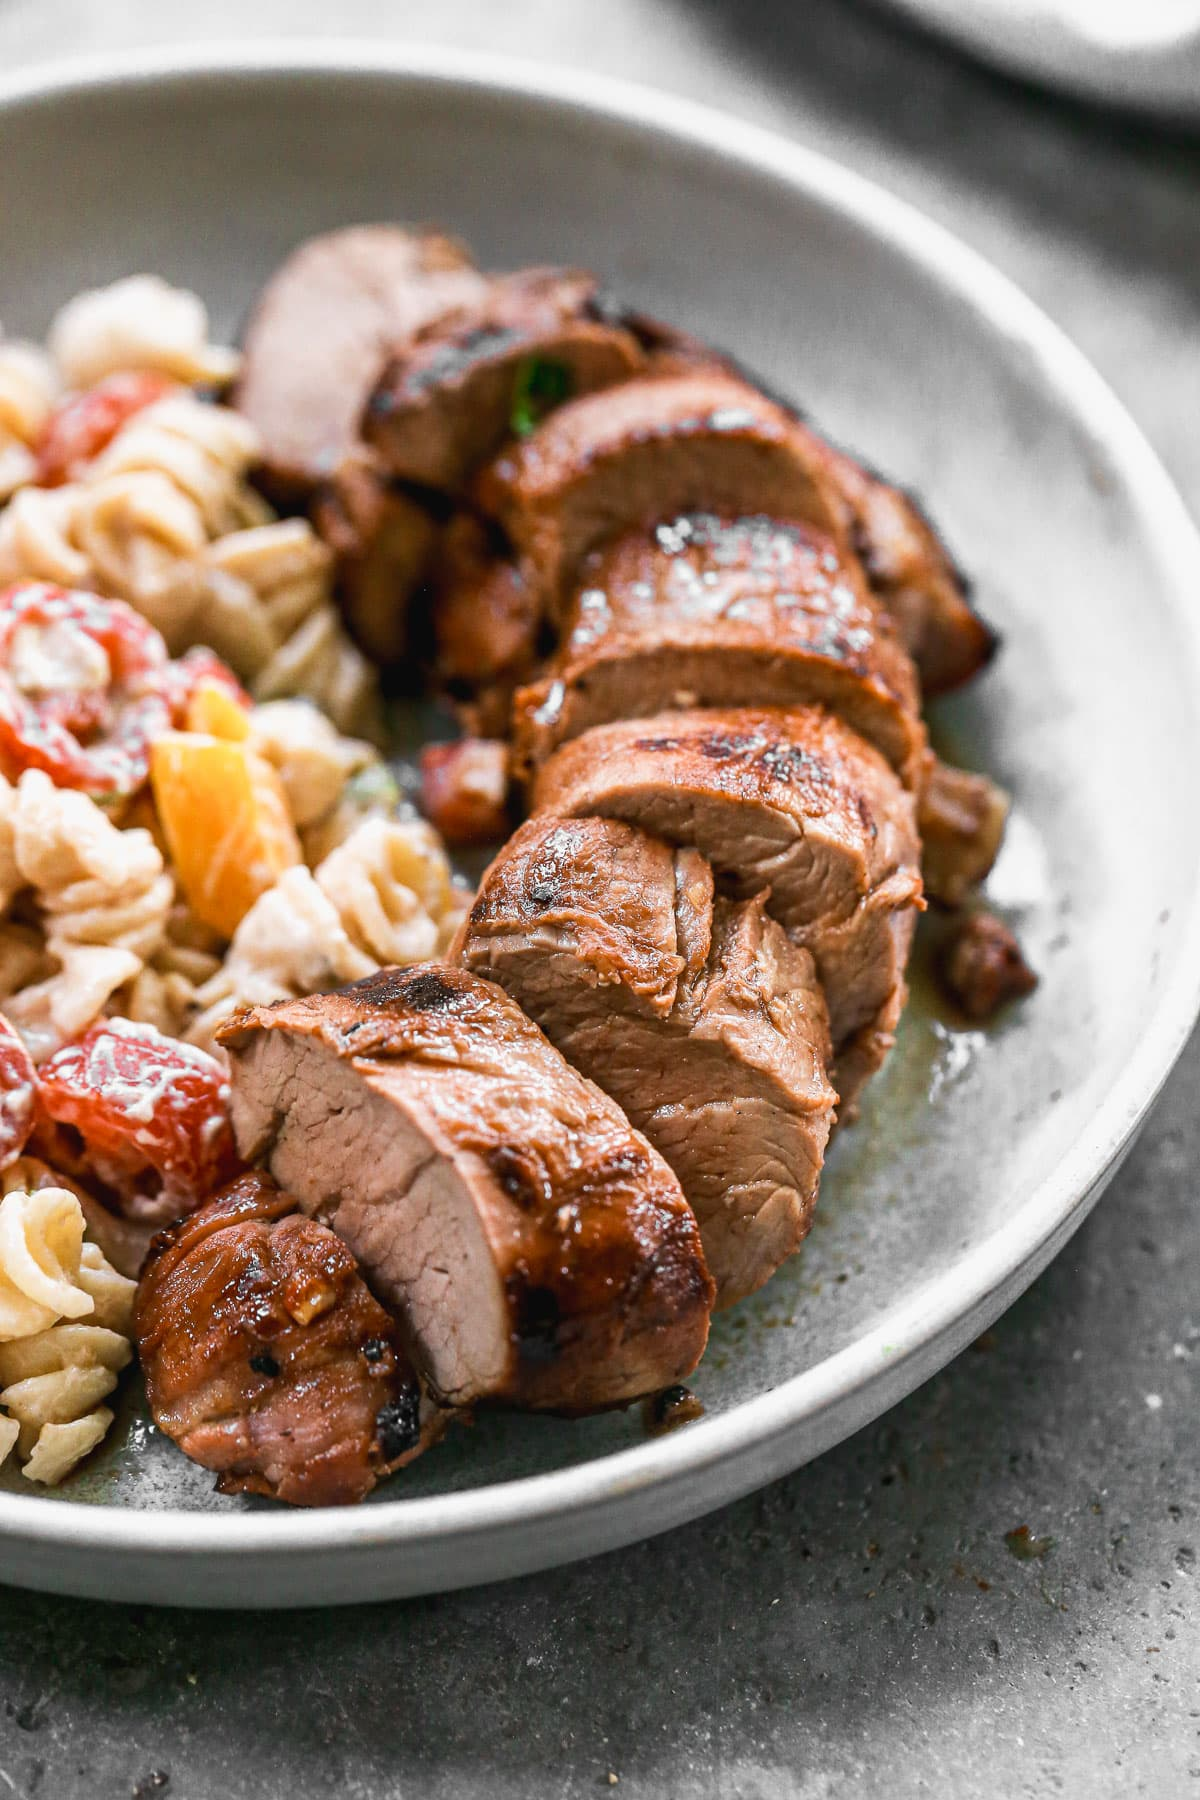 Grilled Mustard Pork Tenderloin with Cheesy Foil Packet Veggies. The easiest way to cook vegetables and meat on the grill! Juicy, tender, and perfectly cooked every time, no clean up required! @wellplated